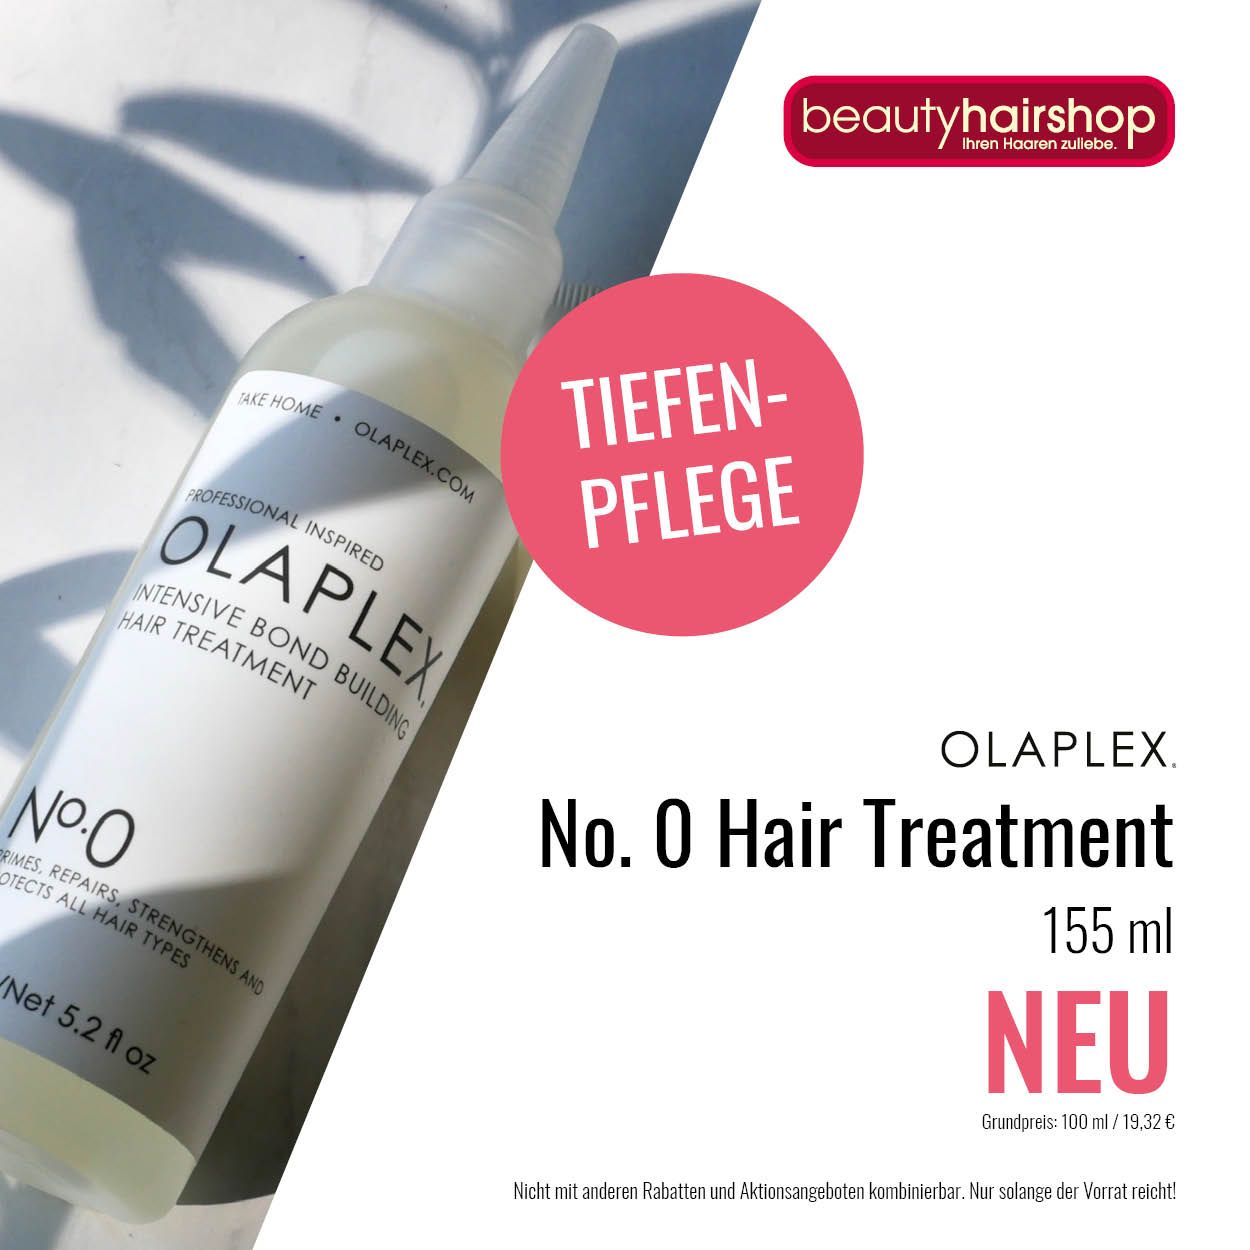 OLAPLEX NO. 0